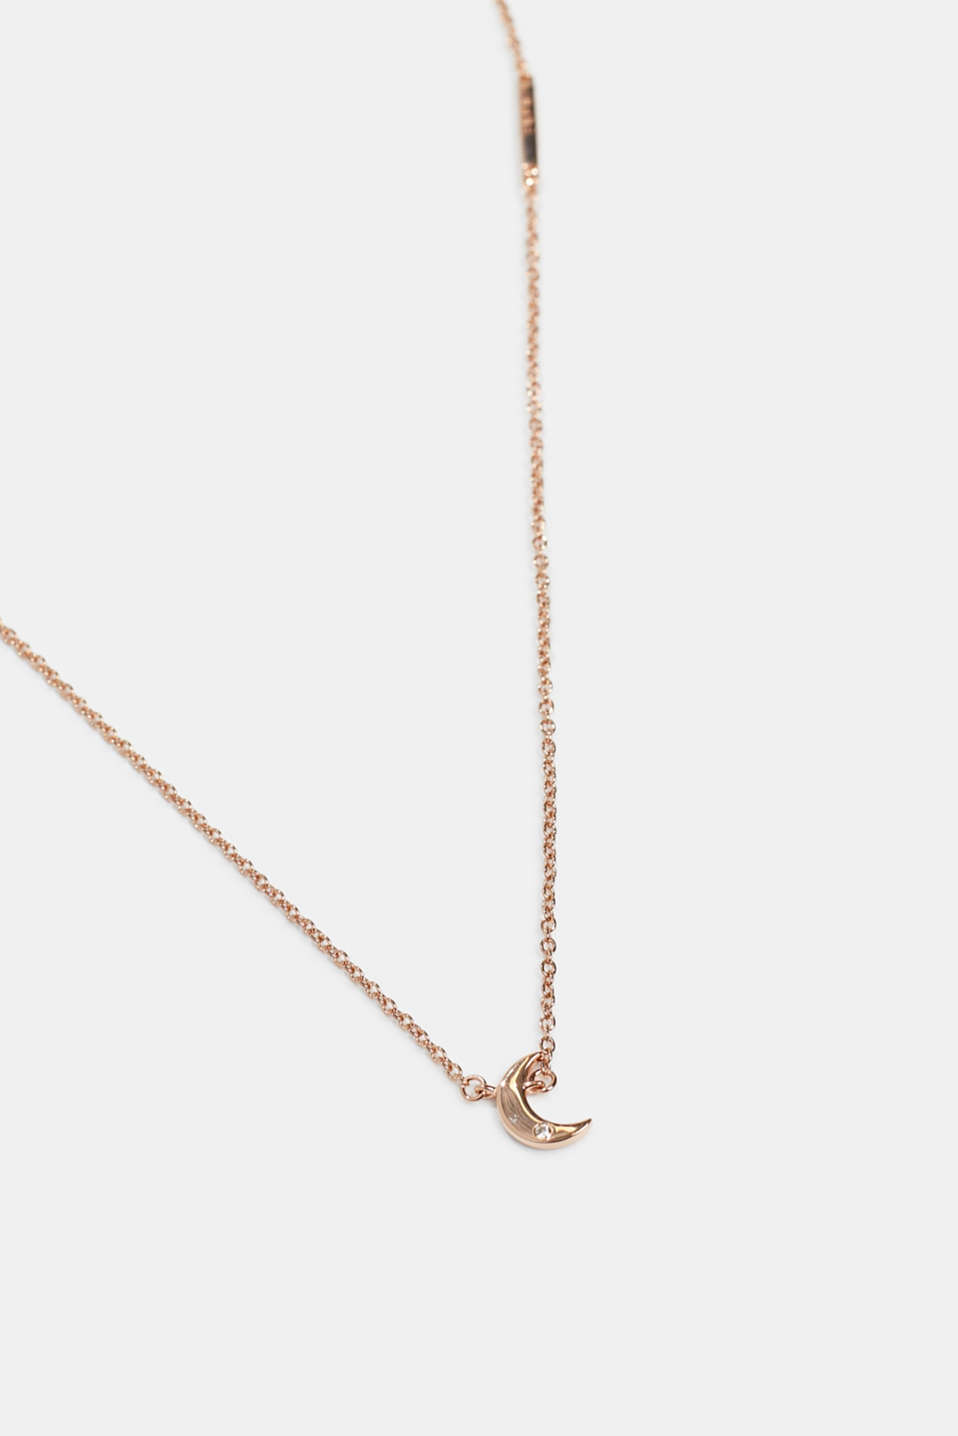 Necklace with pendant, sterling silver, ROSEGOLD, detail image number 0